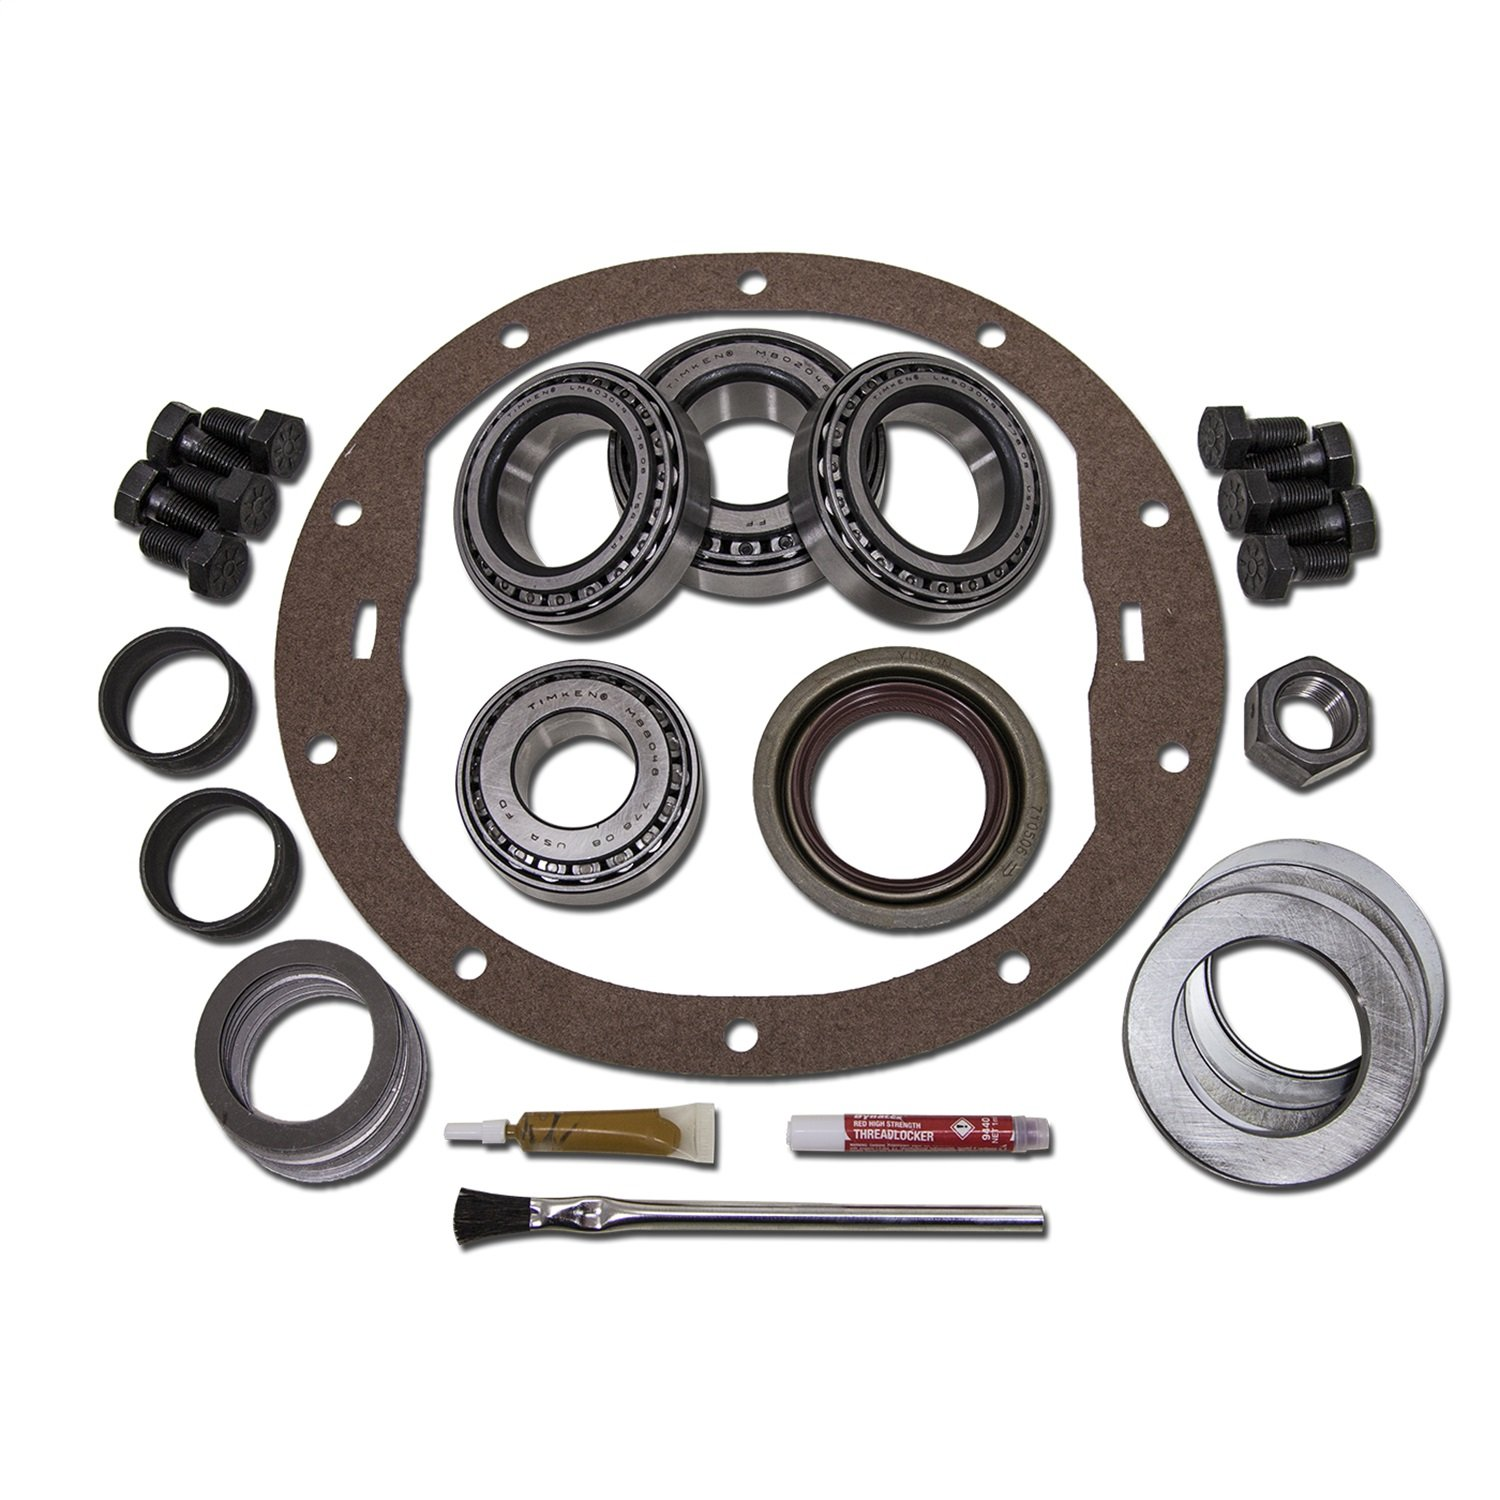 USA Standard Gear (ZK GM8.6) Master Overhaul Kit for GM 8.6' Differential